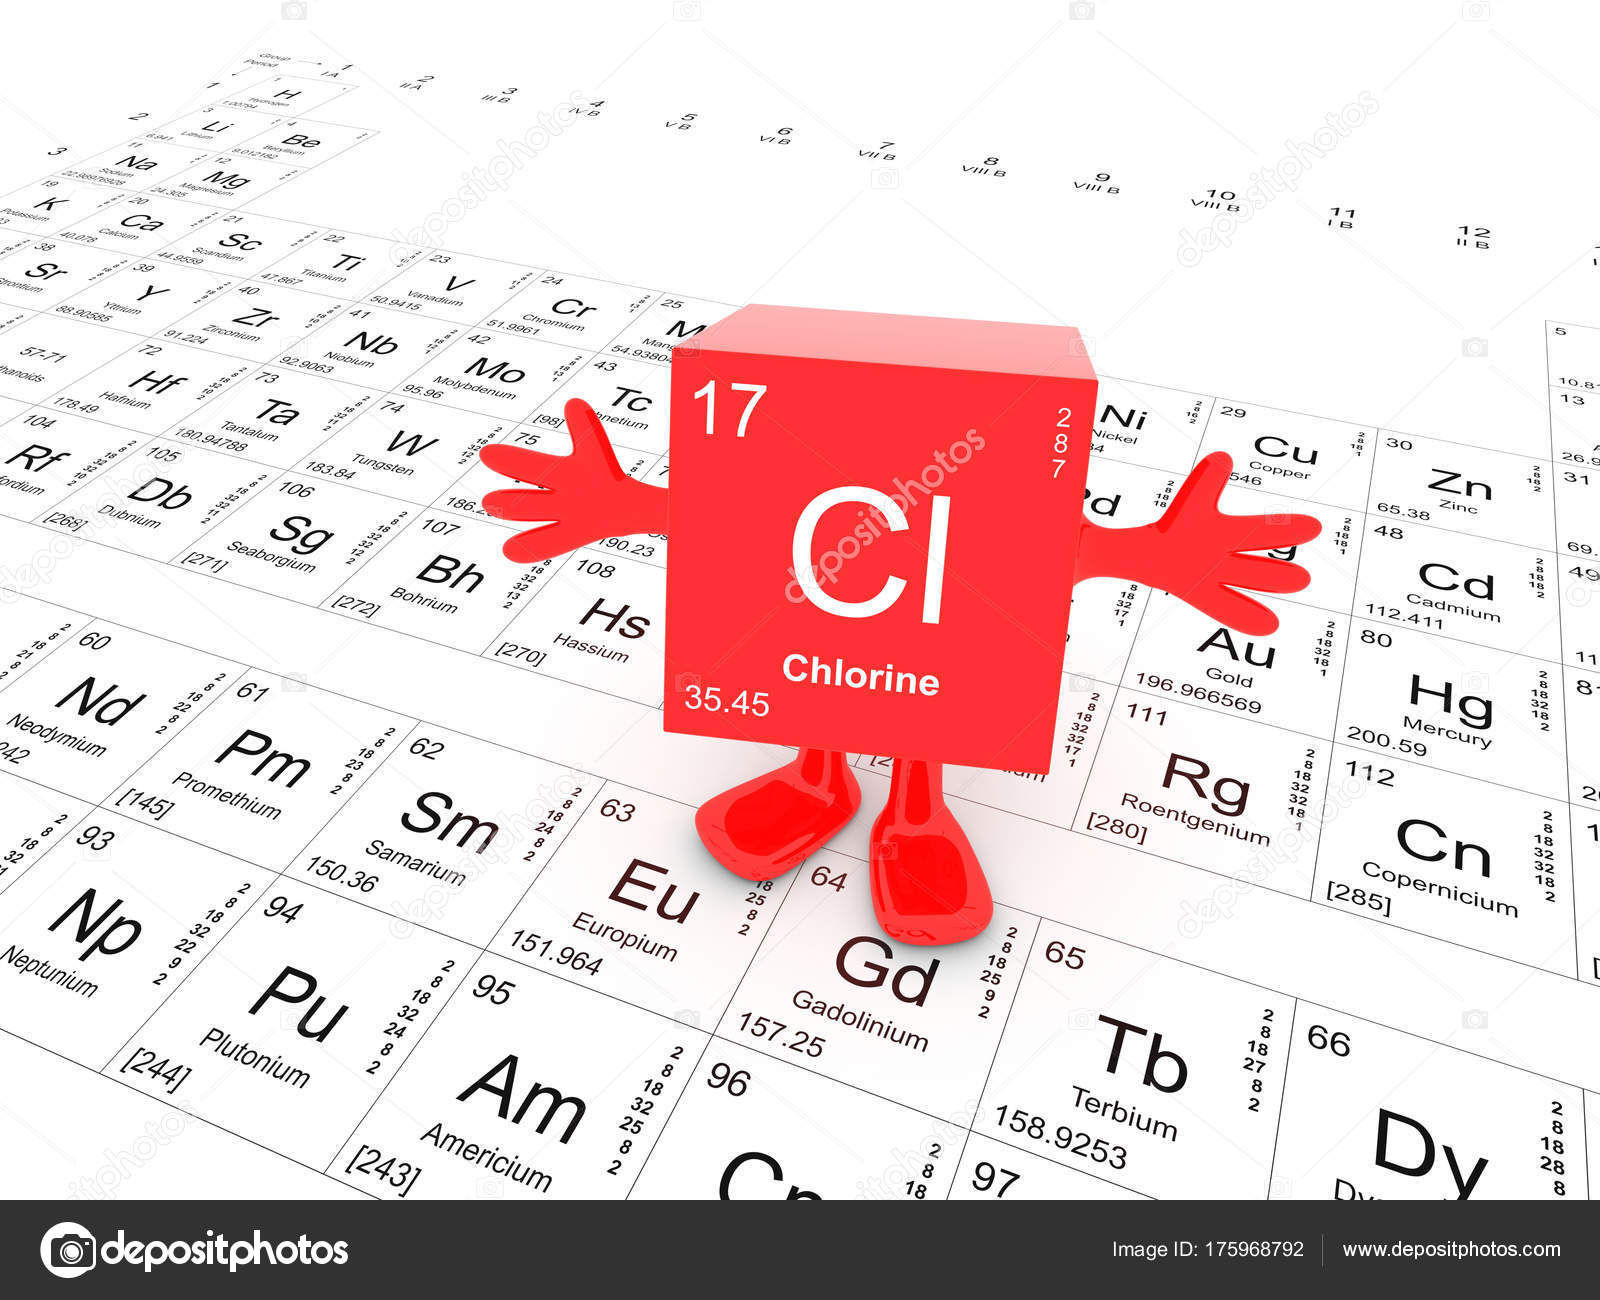 Chlorine element symbol periodic table happy red cube hands stock chlorine element symbol on the periodic table happy red cube with hands up photo by conceptw urtaz Gallery